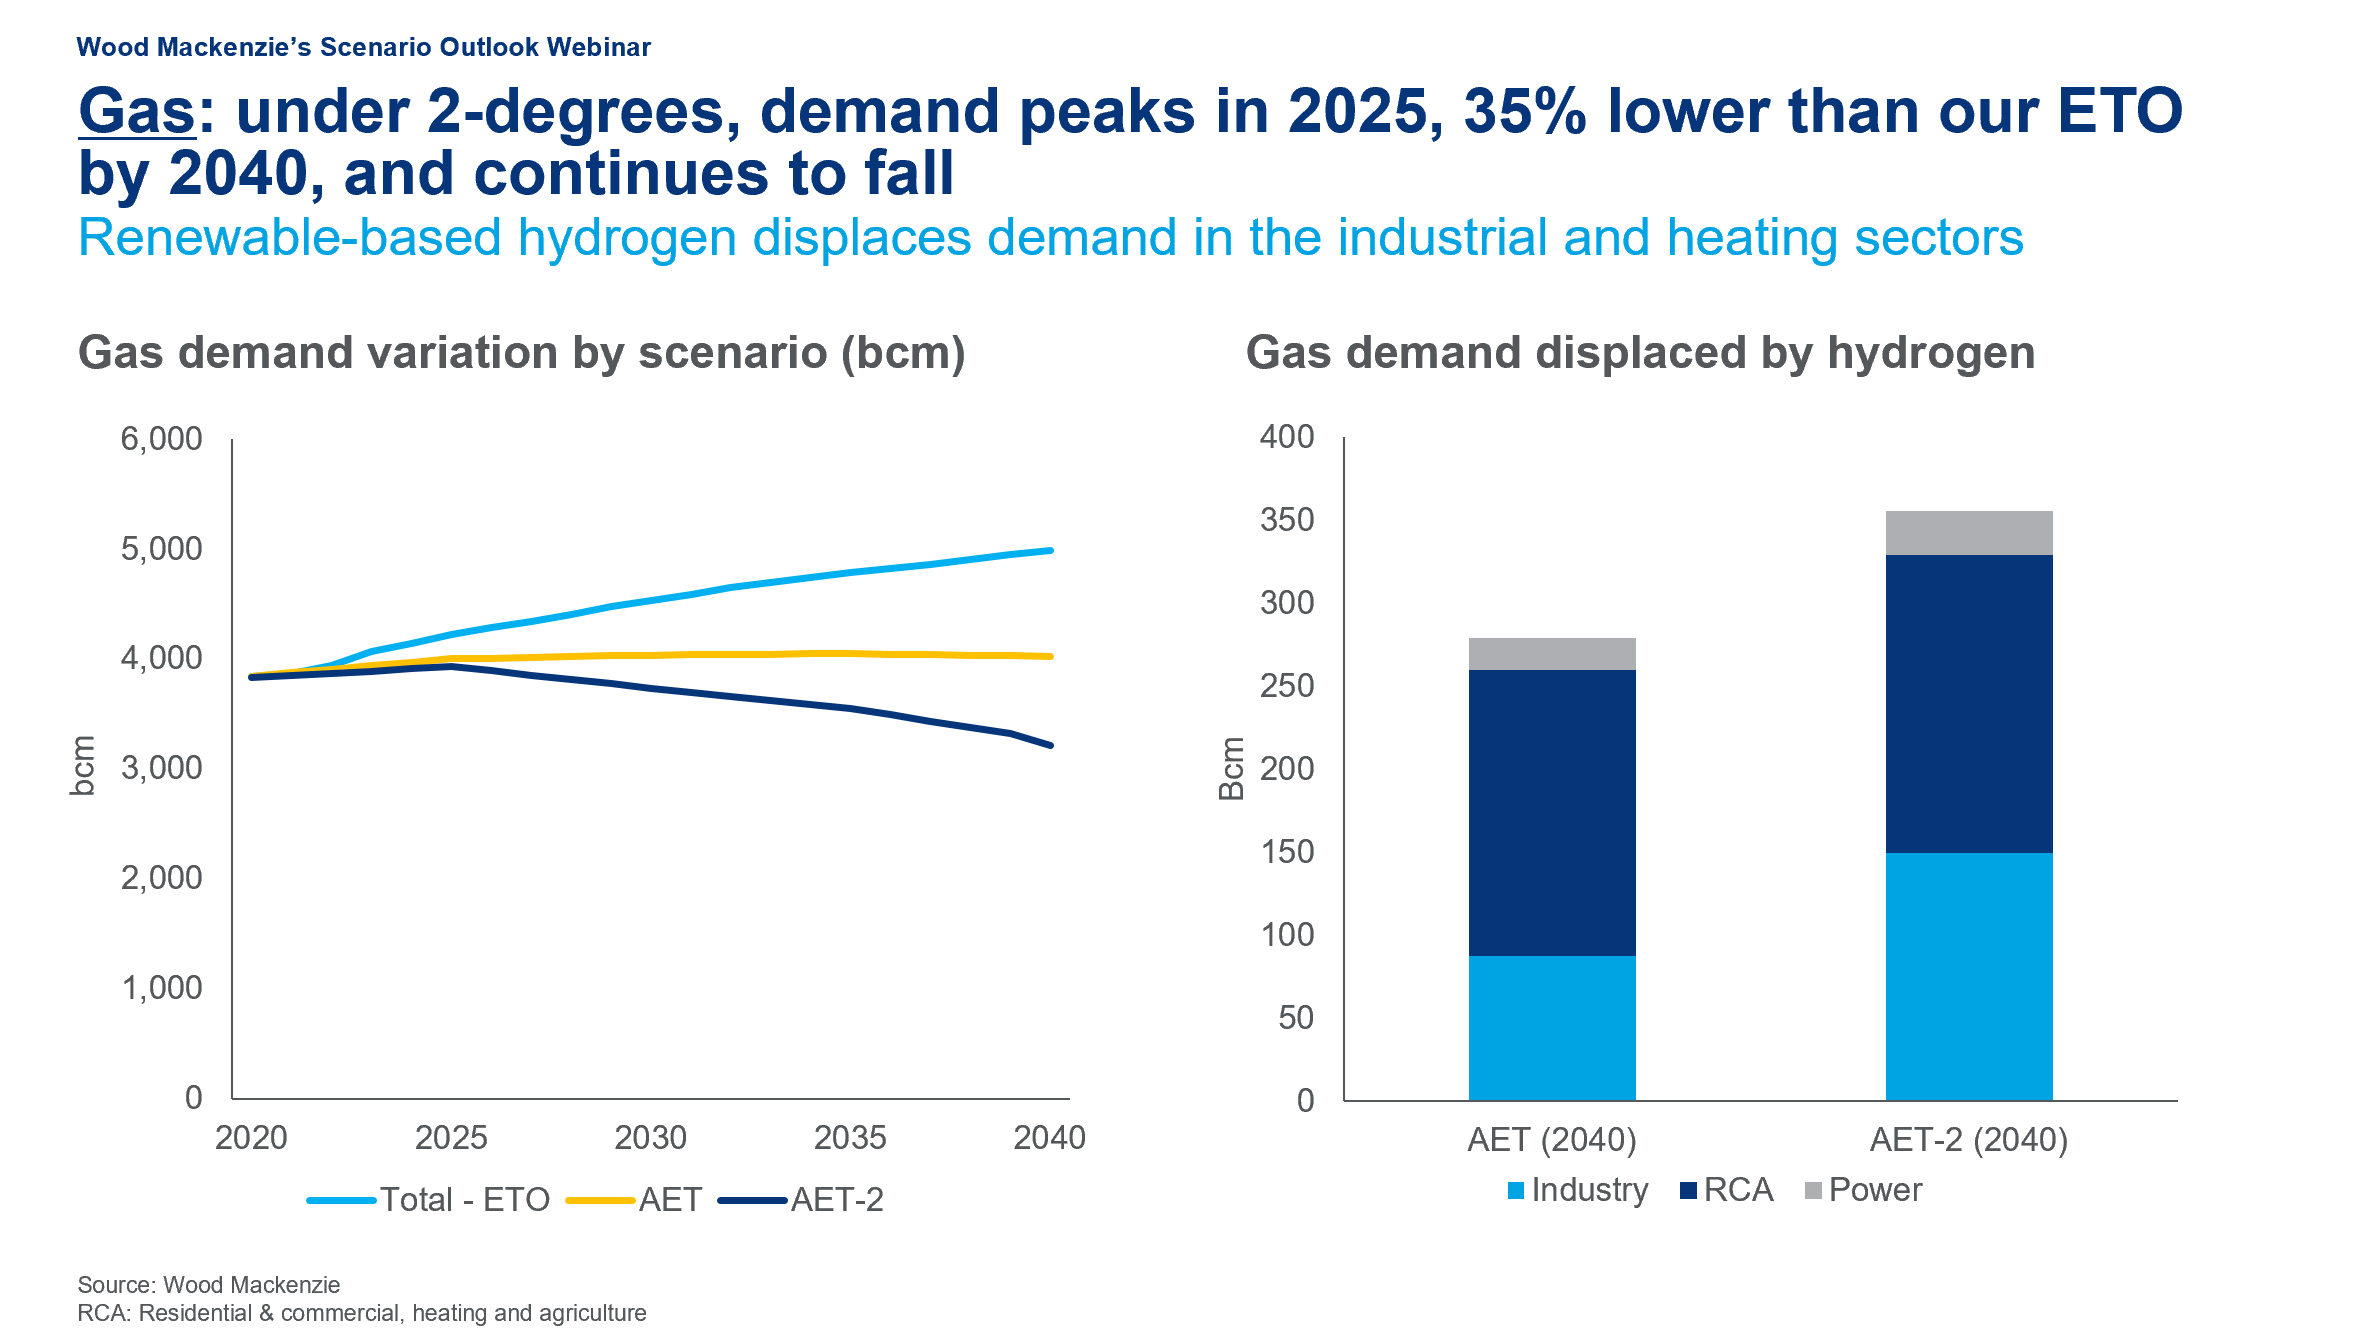 Gas: under 2-degrees, demand peaks in 2025, 35% lower than our ETO by 2040, and continues to fall